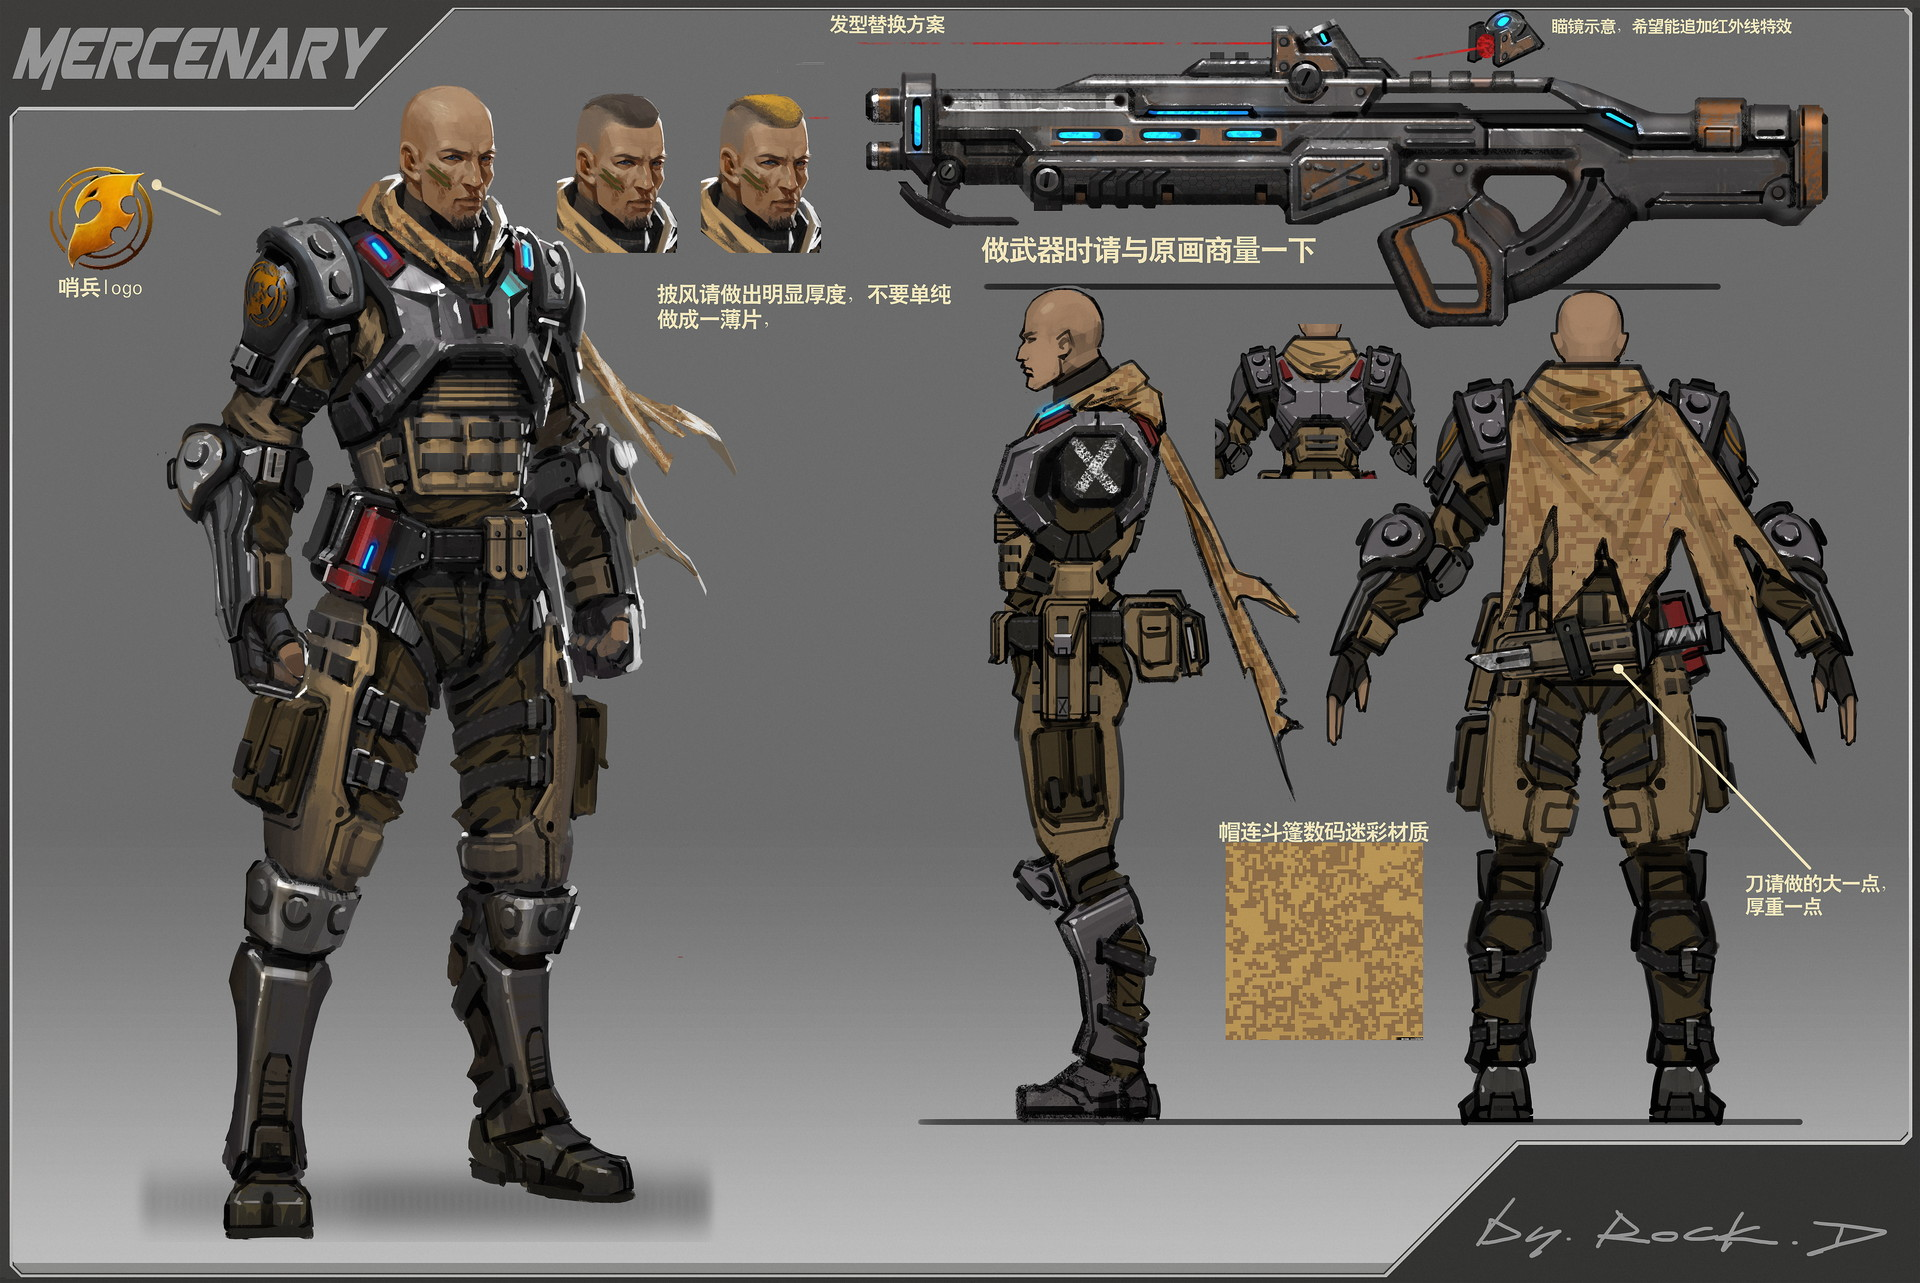 Rock d mercenary concept